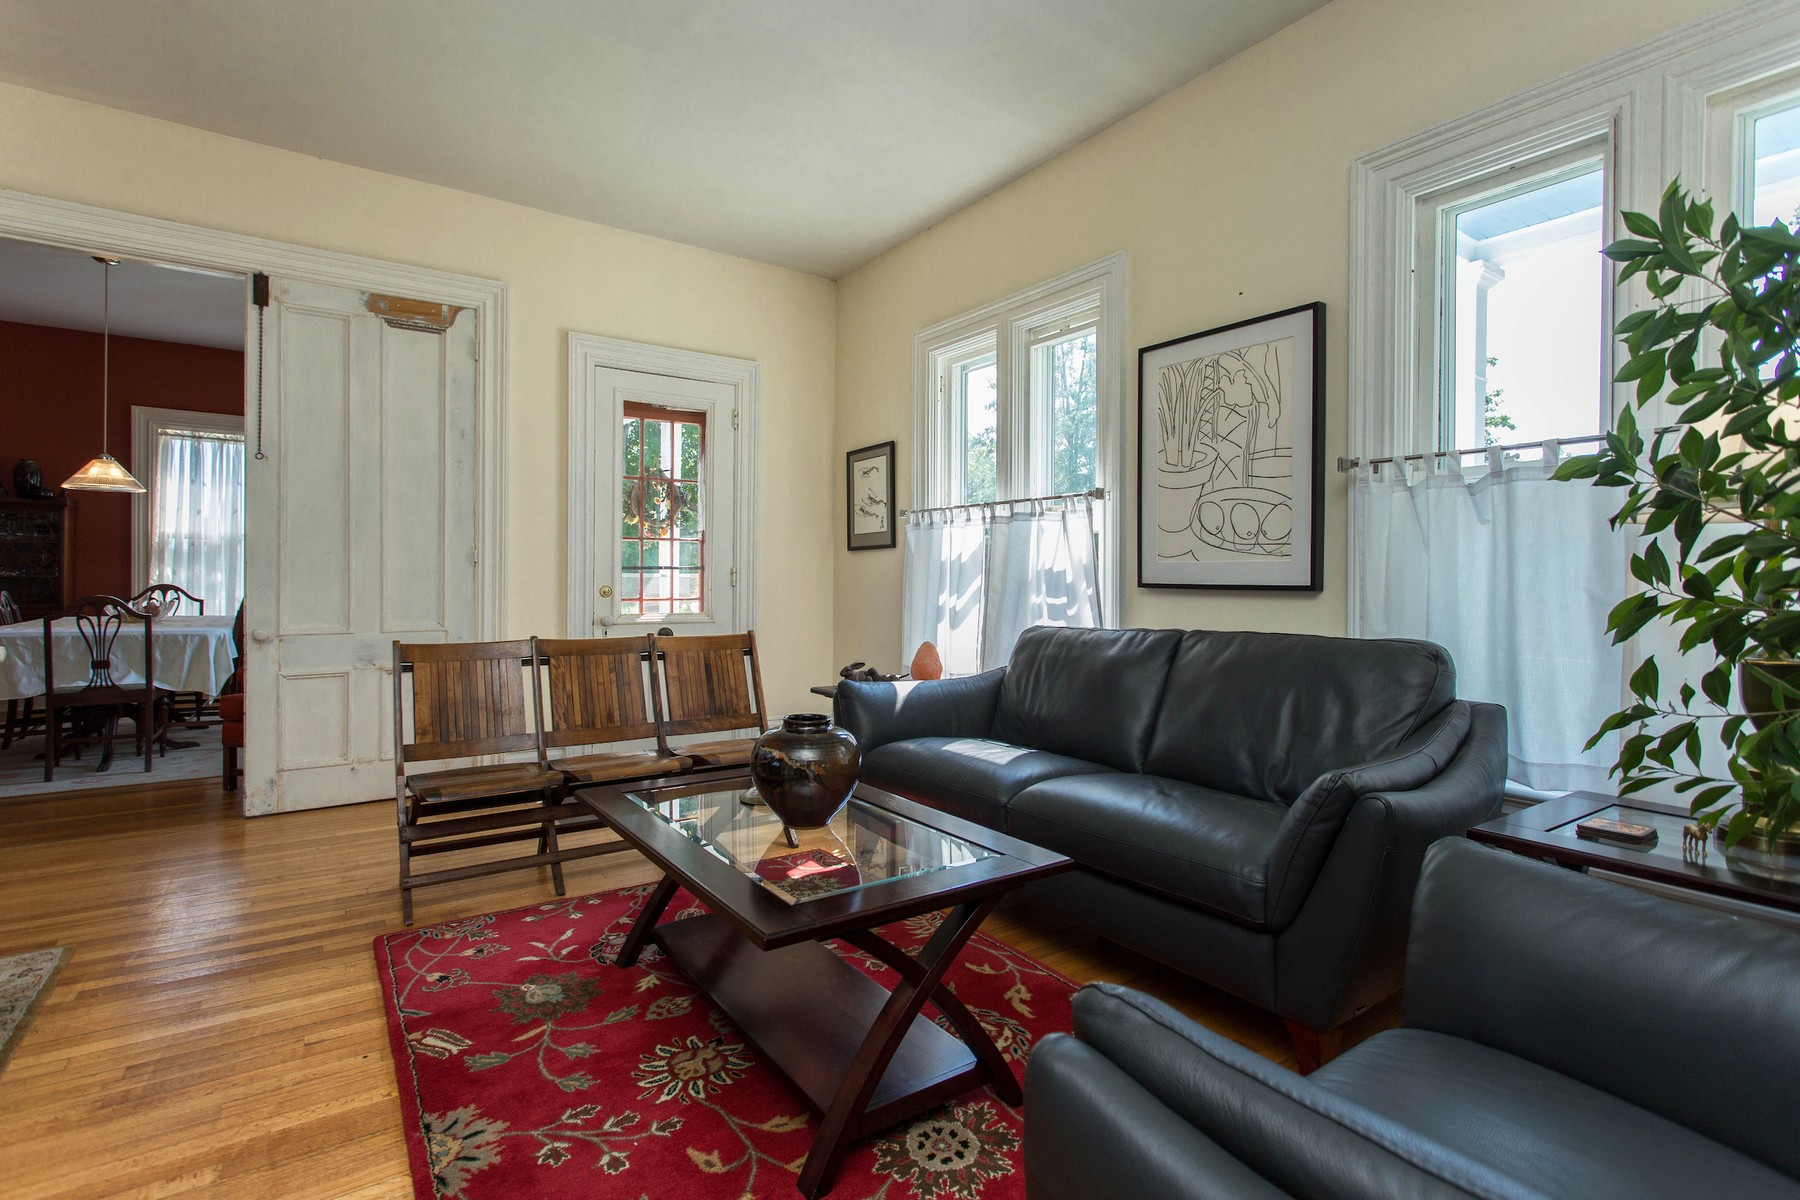 Additional photo for property listing at Stately Country Victorian 21  Filmore La Cambridge, Nueva York 12816 Estados Unidos